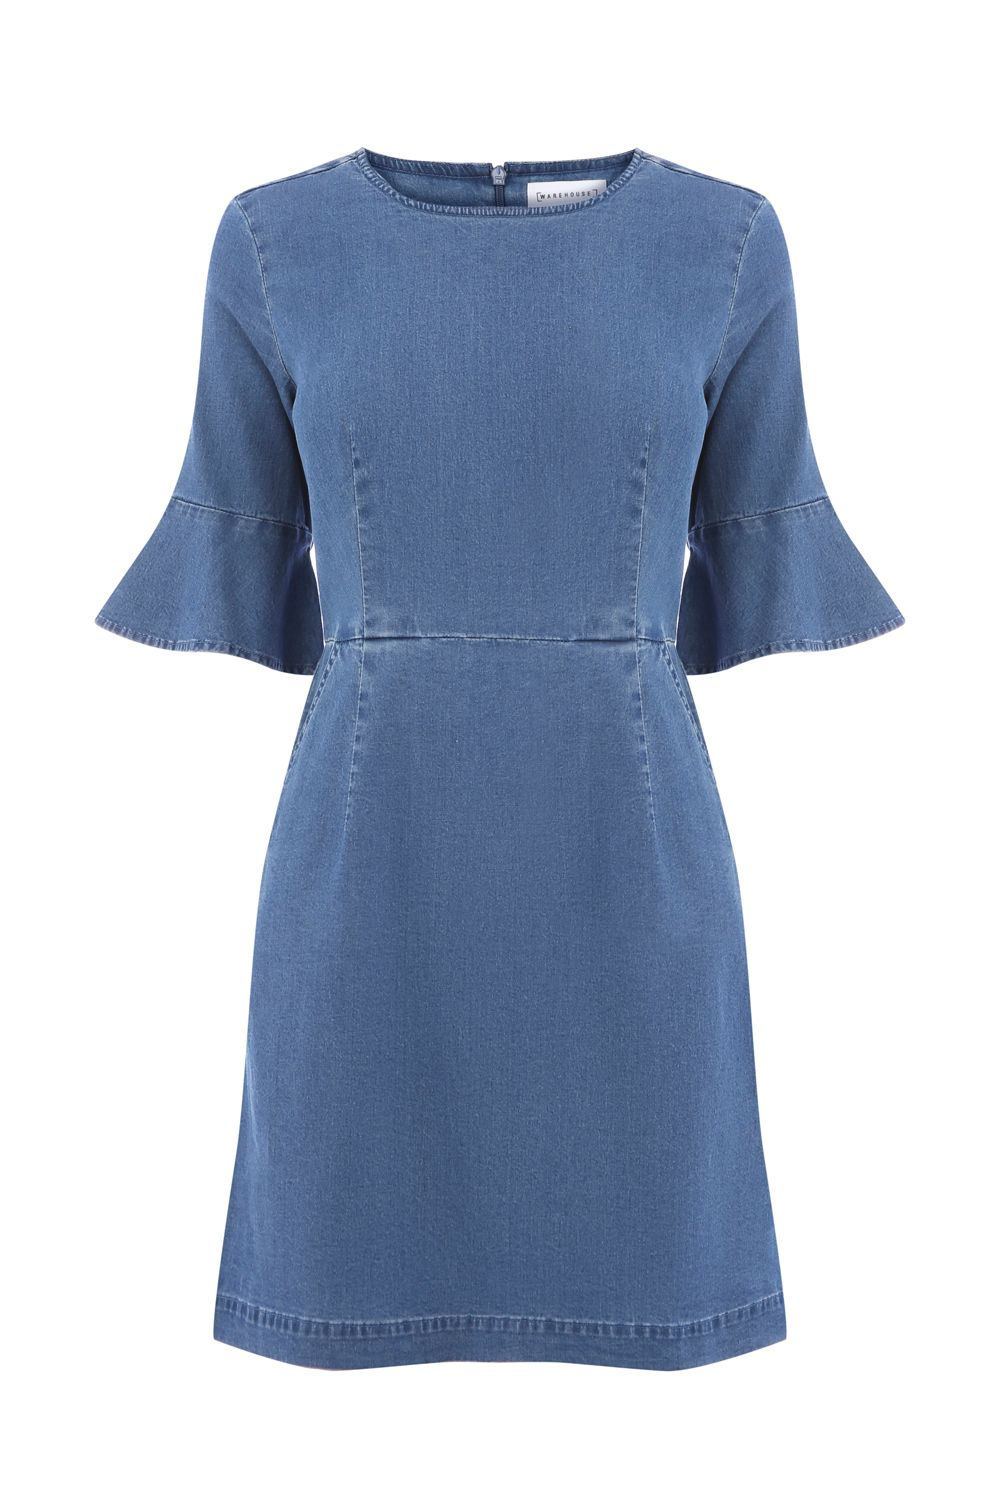 Warehouse Fit And Flare Dress, Denim